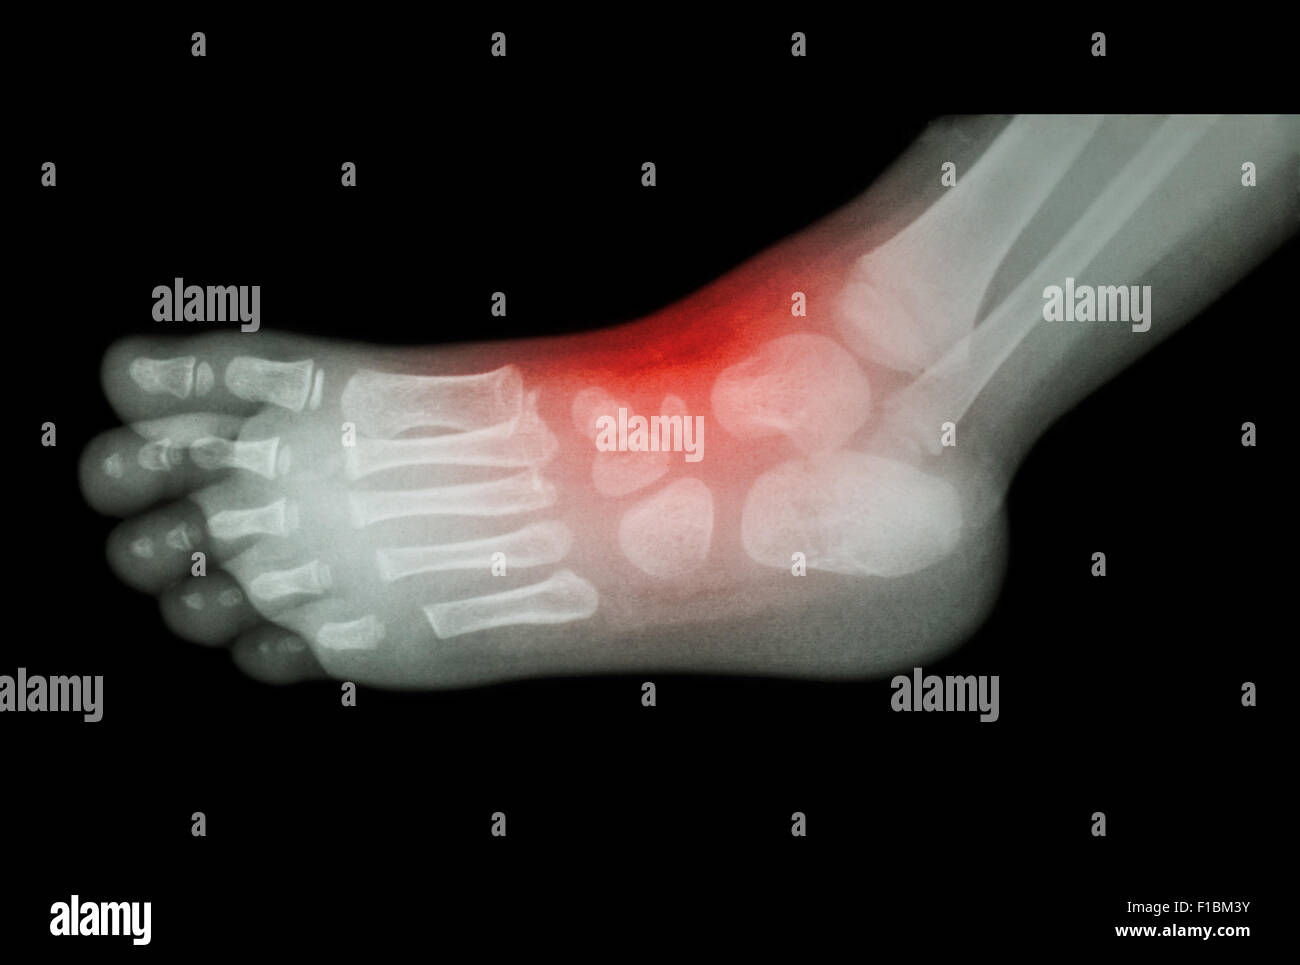 Medical X Ray Lateral Ankle Stock Photos & Medical X Ray Lateral ...